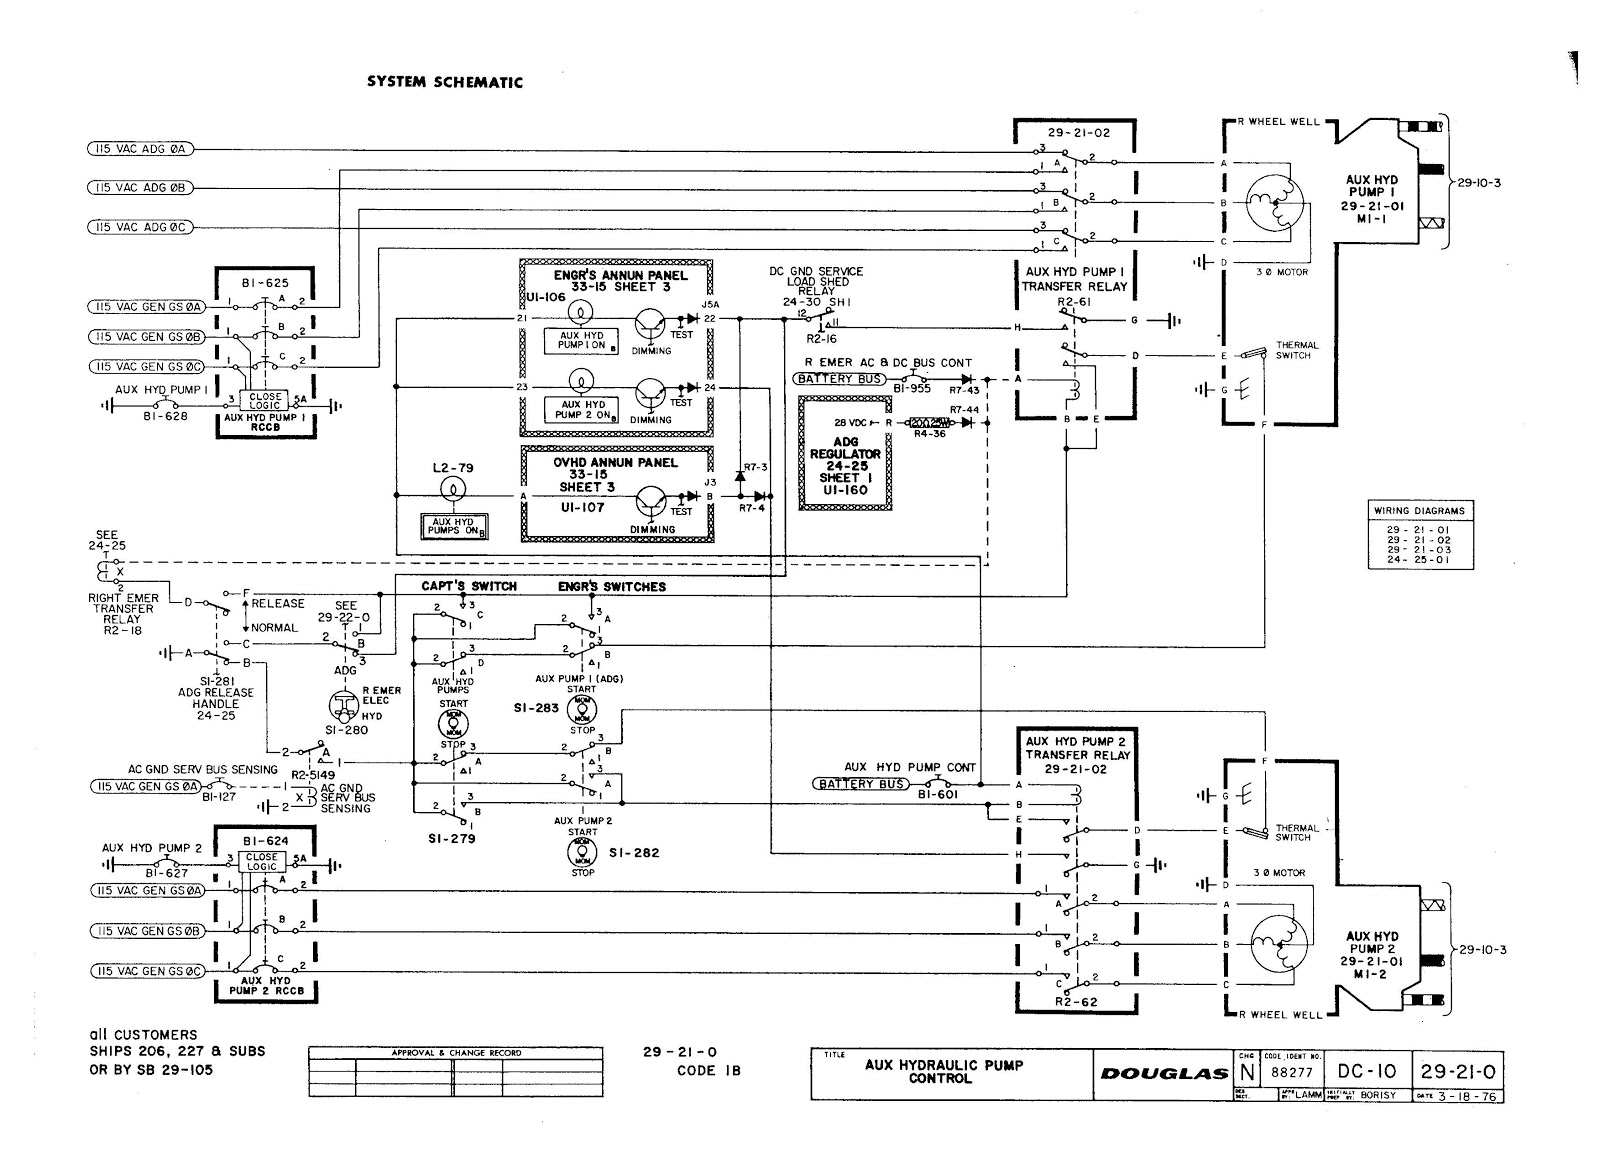 Schematic+diagram+dc+10+hydraulic+001 part 66 virtual school aircraft wiring and schematic diagrams reading wiring diagram at gsmx.co